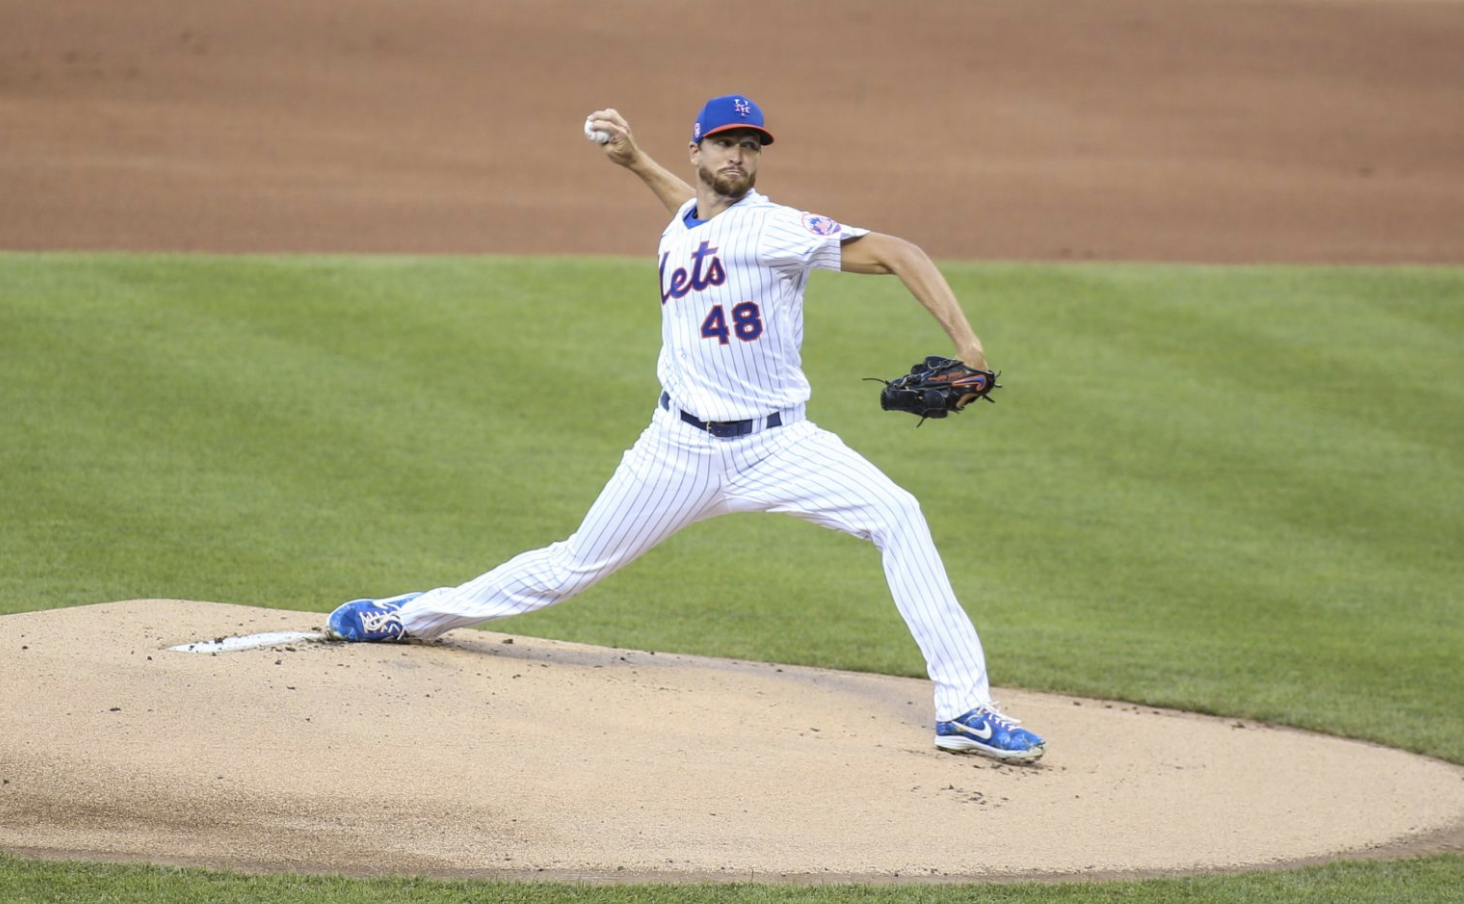 No word yet on severity of Mets ace Jacob deGrom's back tightness